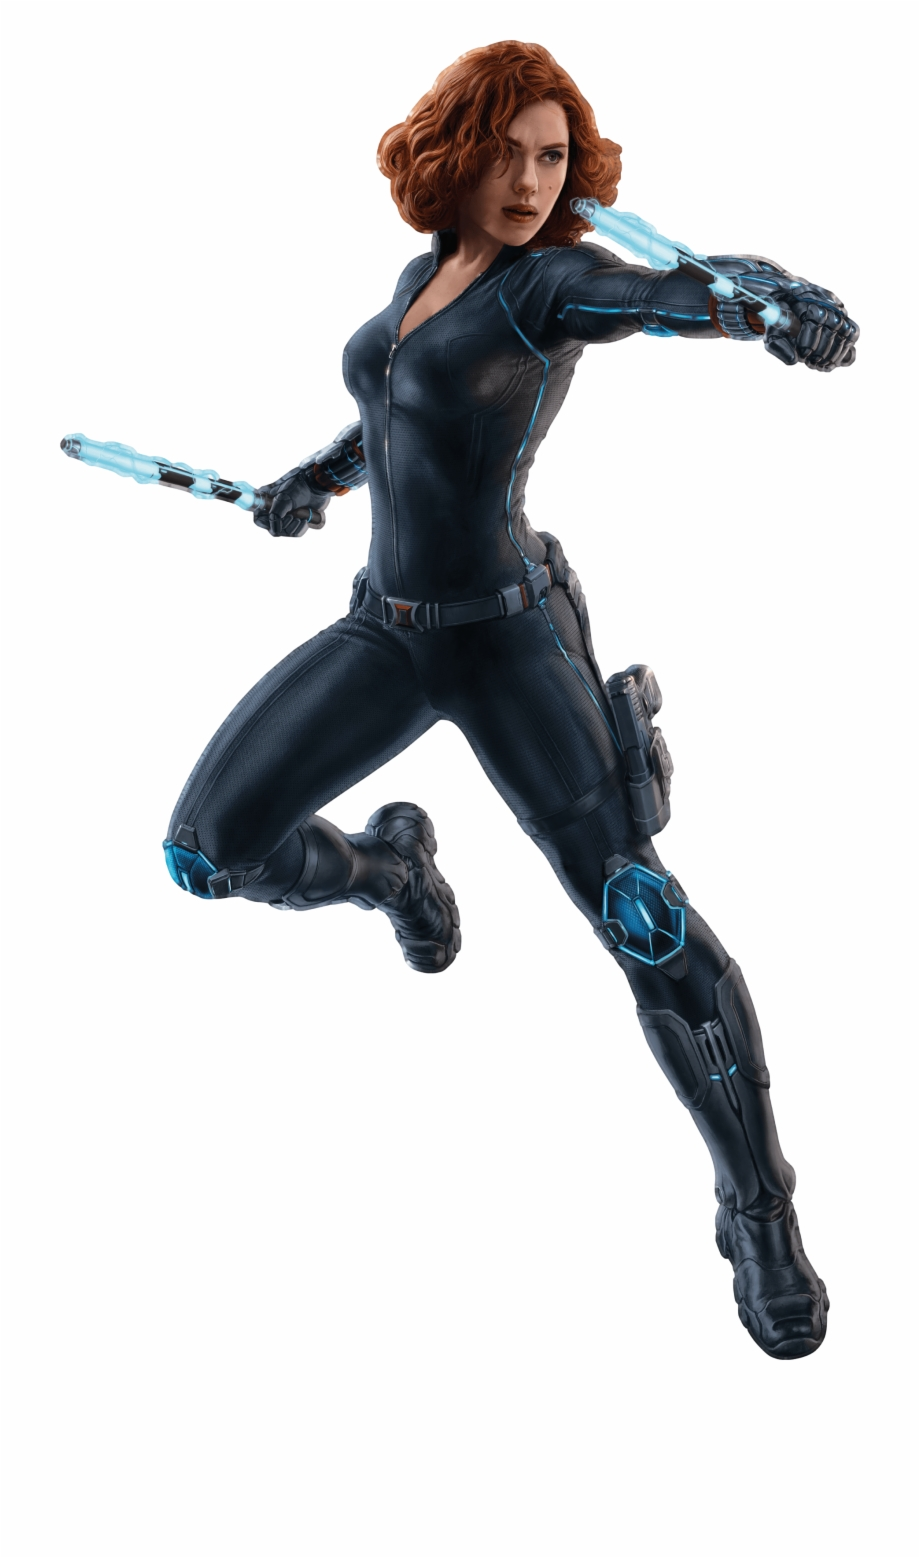 Black Widow Avengers Png Png Download Natasha Romanoff